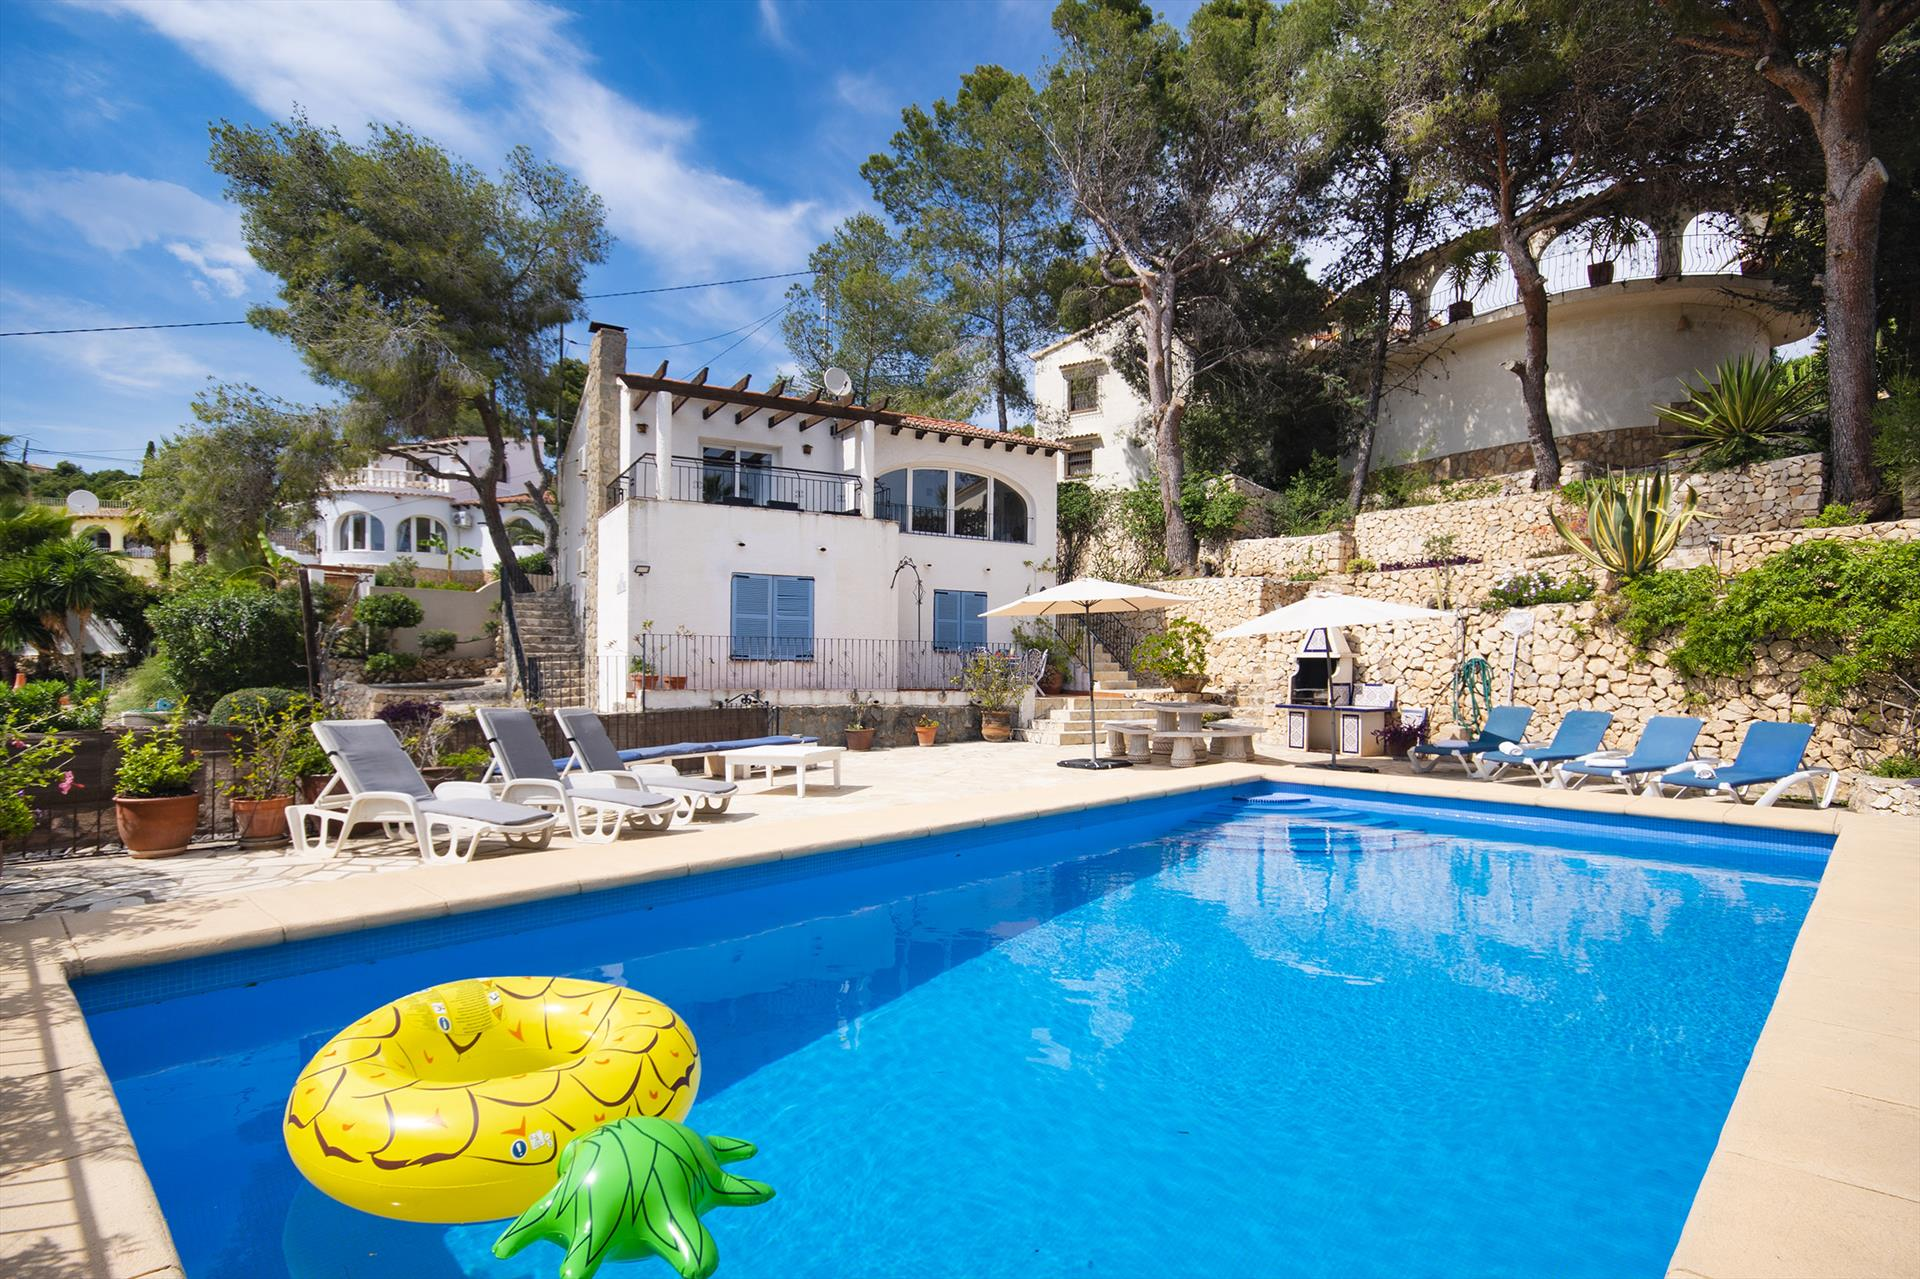 Georgianna 8p, Classic and comfortable villa  with private pool in Benissa, on the Costa Blanca, Spain for 8 persons.....